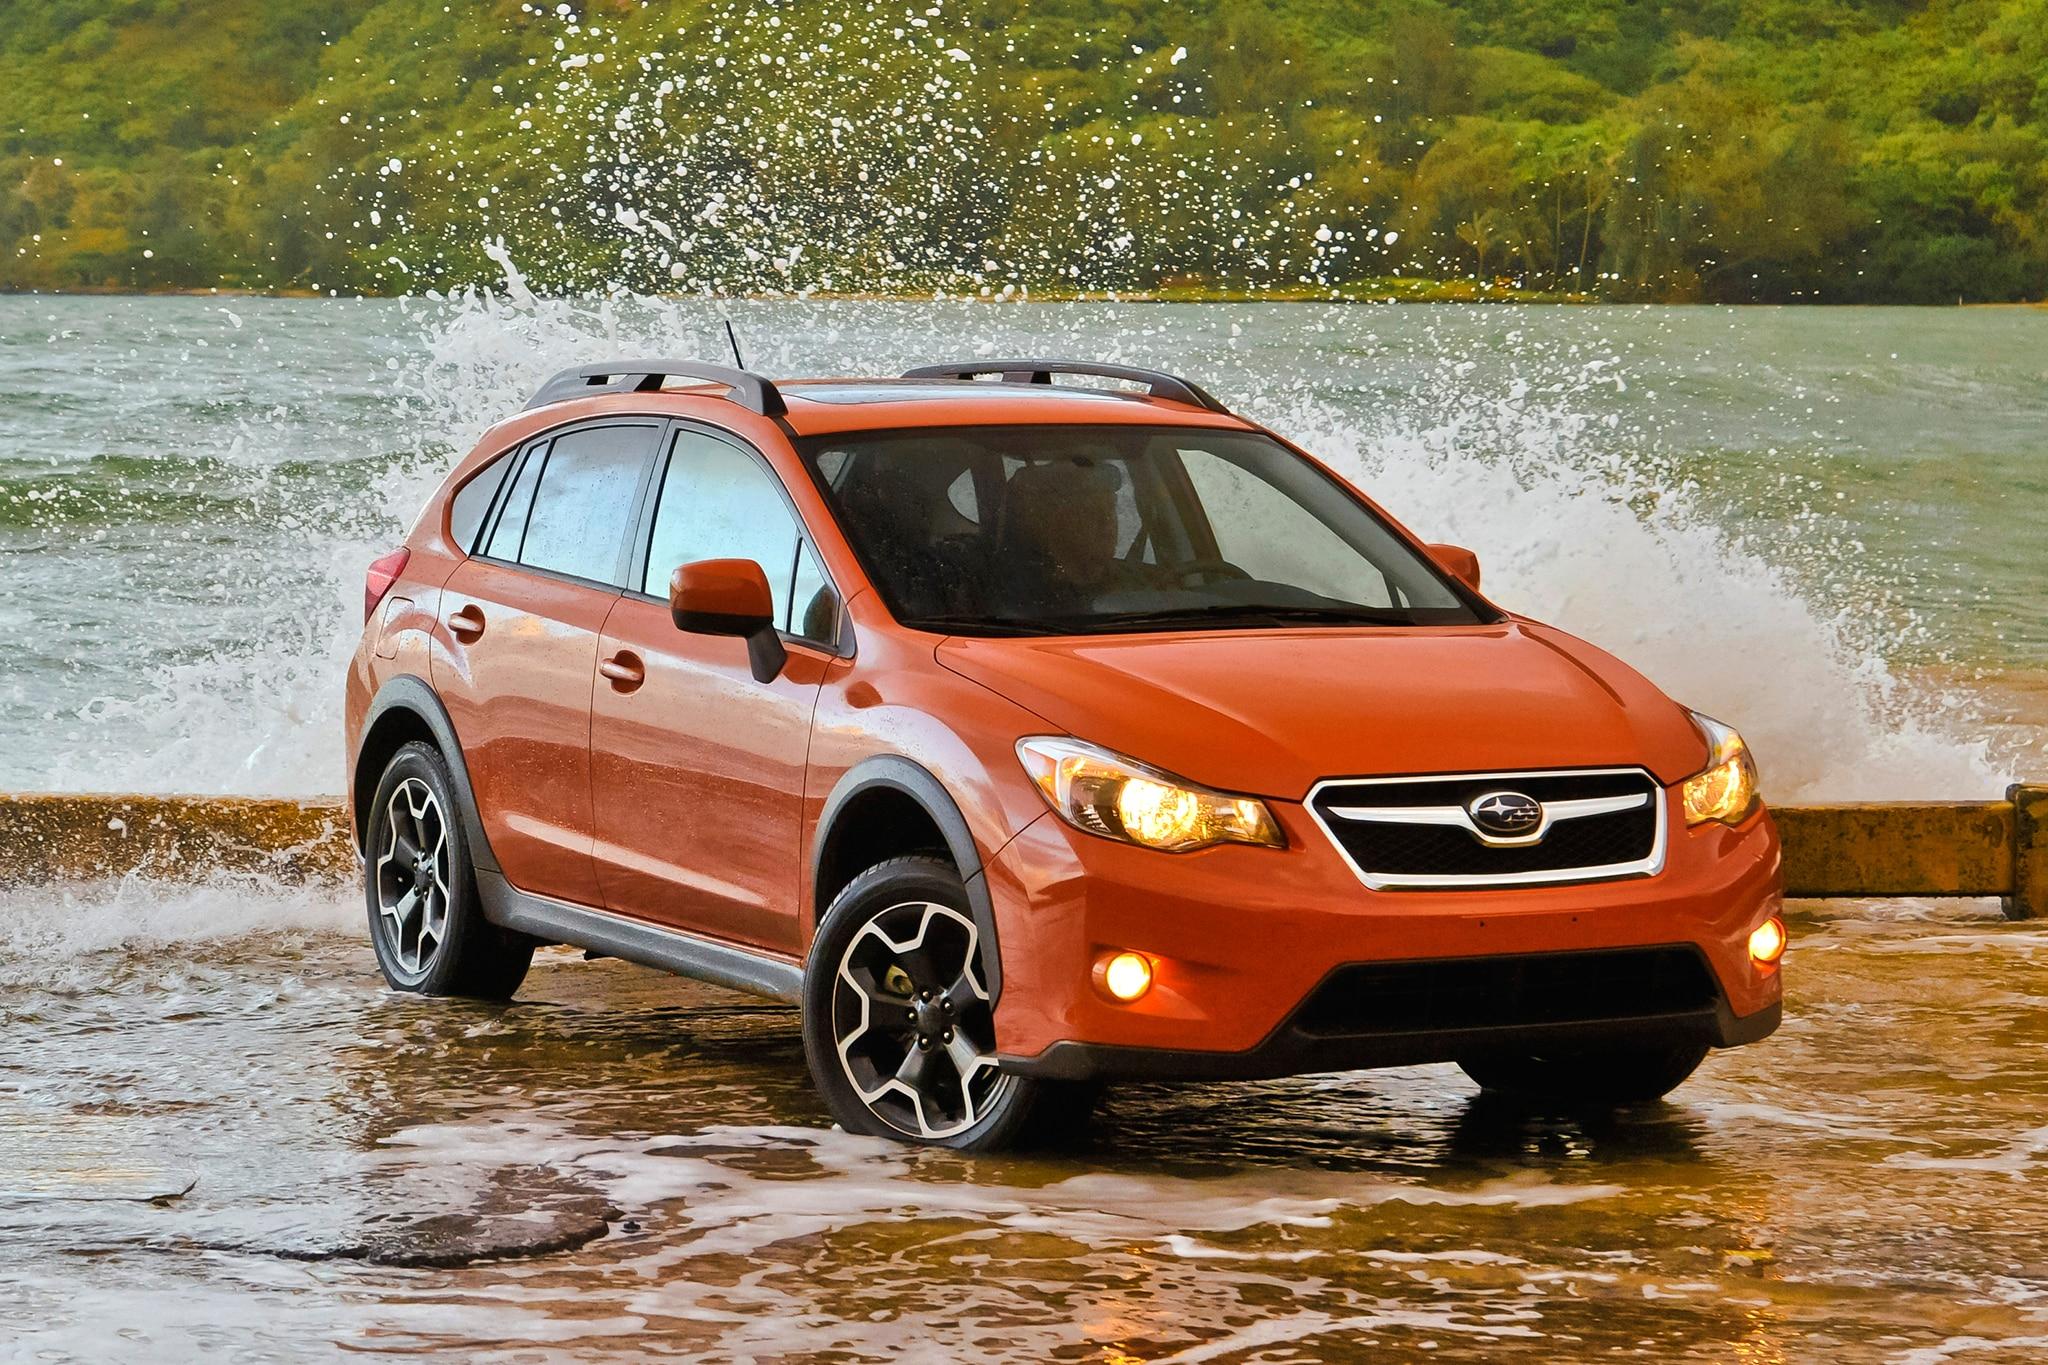 2013 Subaru XV Crosstrek Water View1